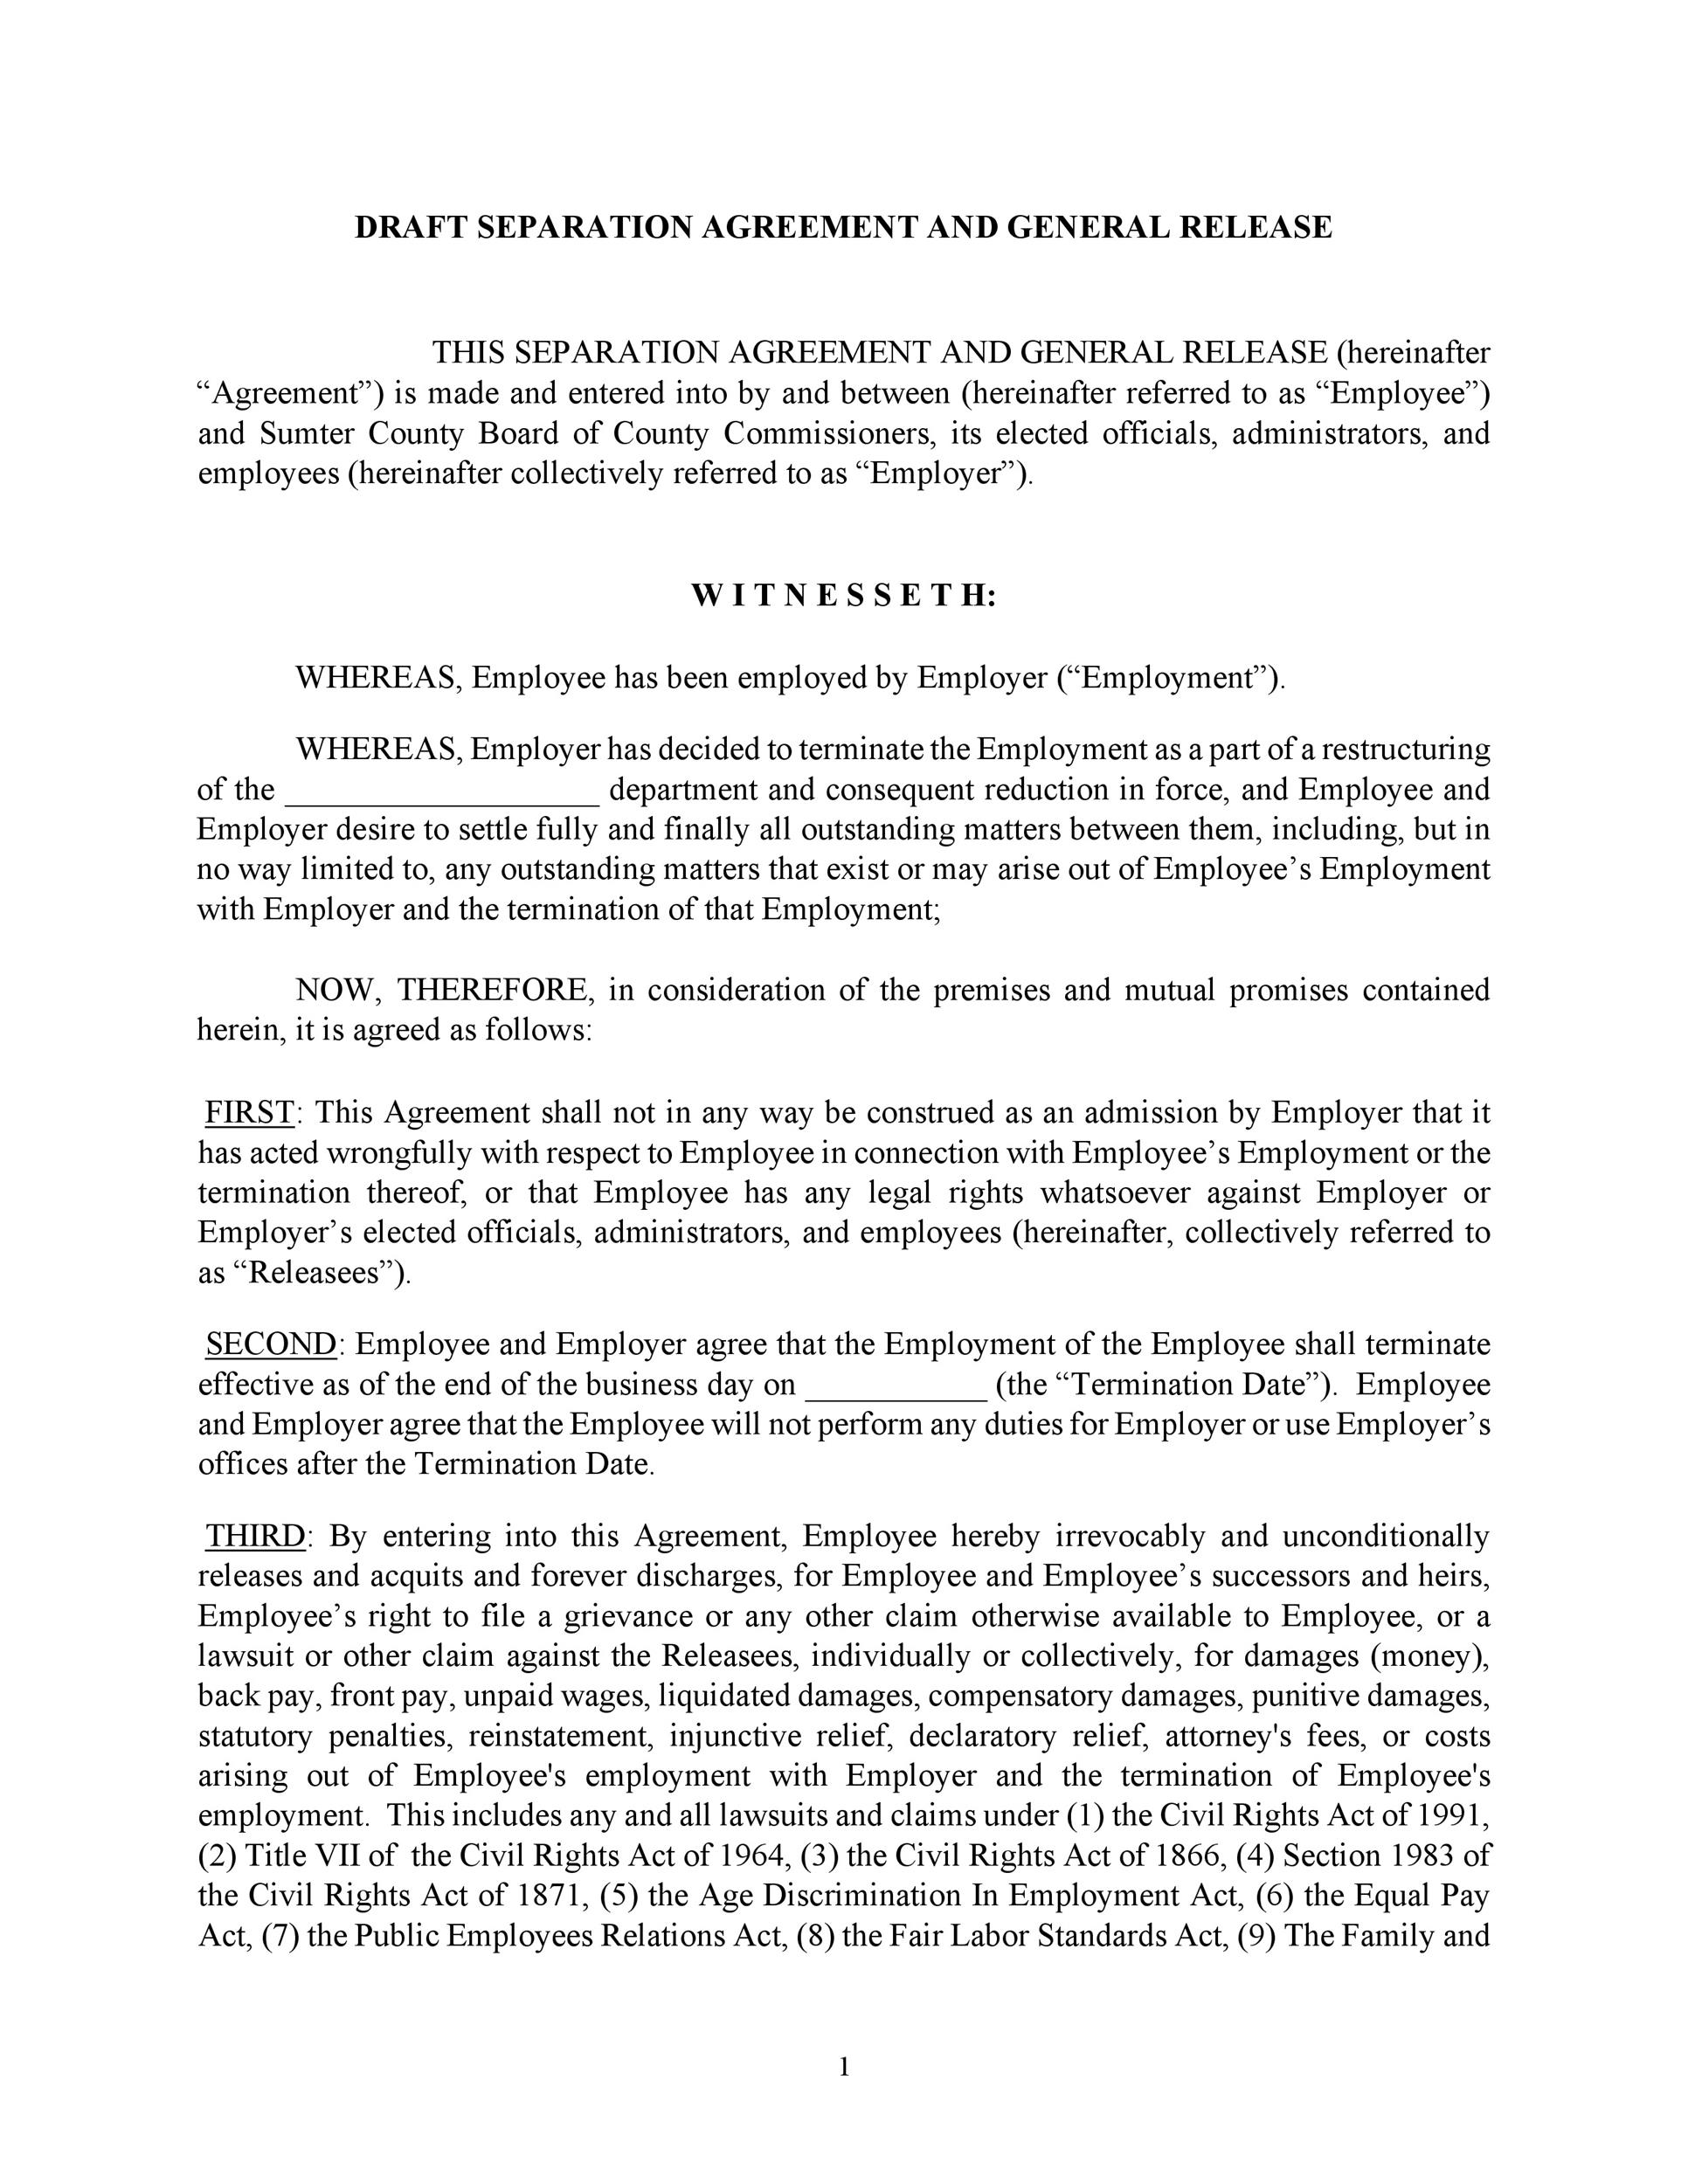 Free Separation Agreement Template 22